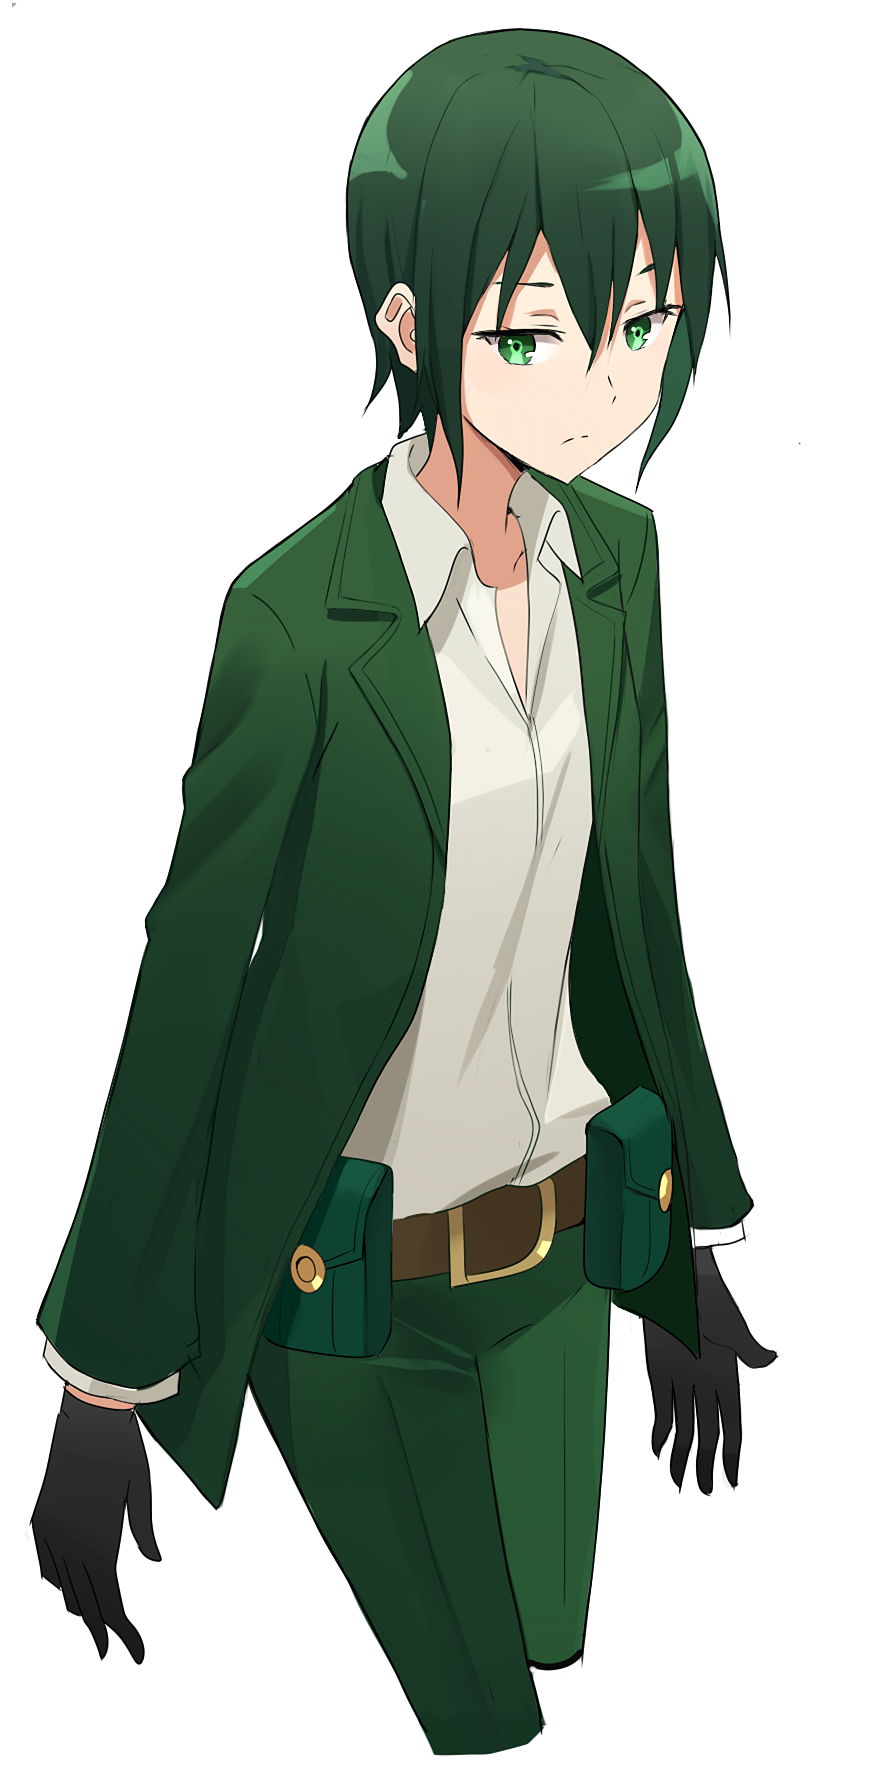 1girl androgynous belt black_gloves collarbone cropped_legs dress_shirt gloves green_eyes green_hair green_jacket green_pants hair_between_eyes highres jacket kenkaizar kino kino_no_tabi open_clothes open_jacket pants shirt short_hair simple_background solo standing white_background white_shirt